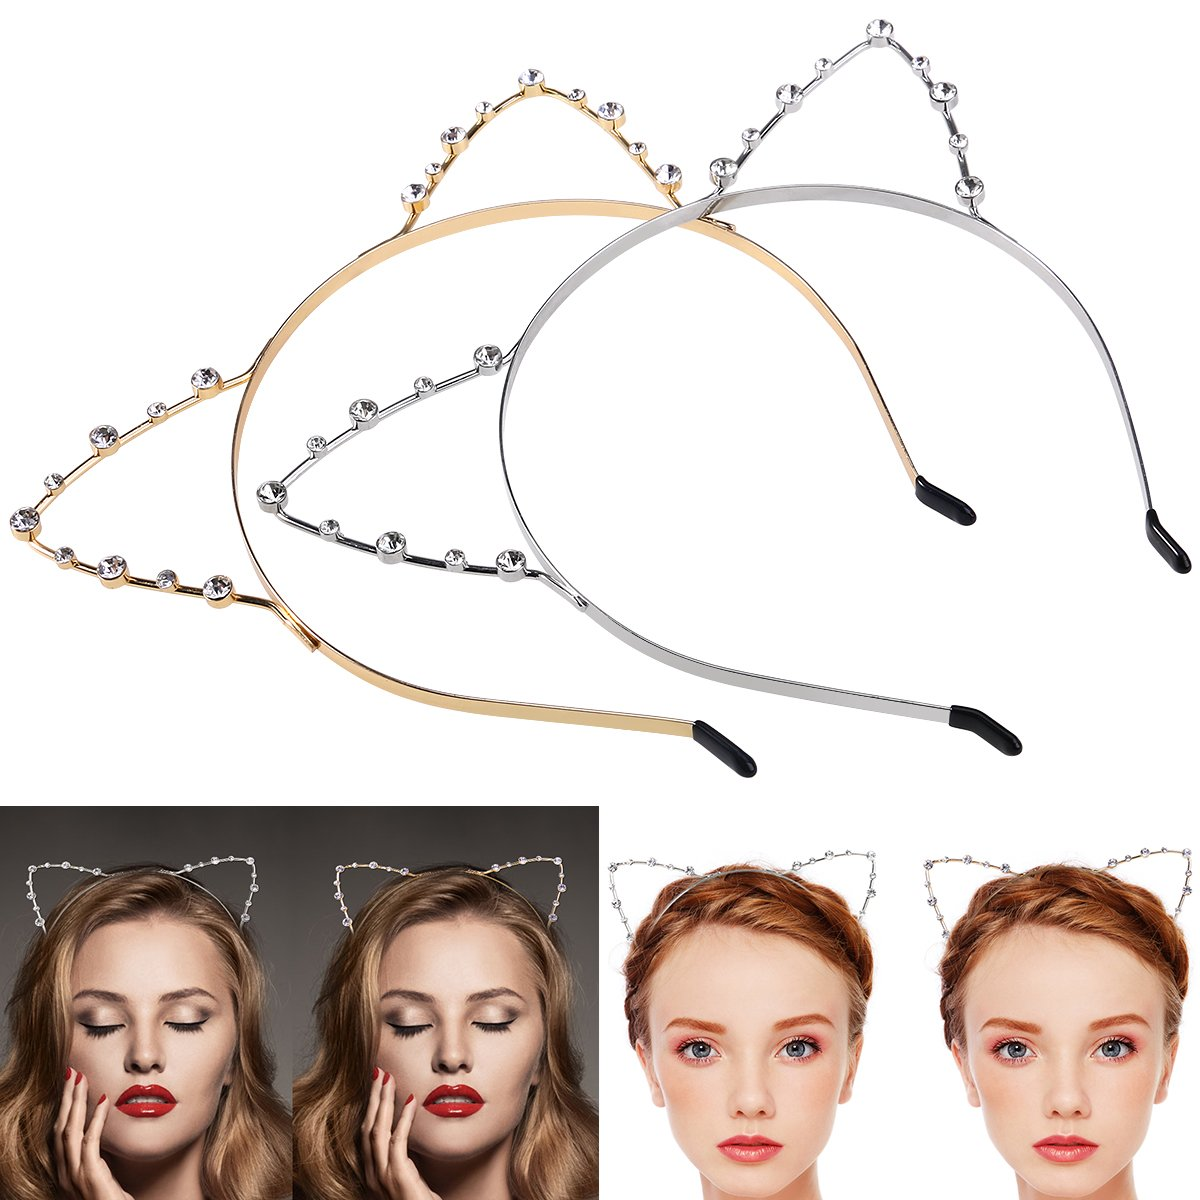 ETEREAUTY Cat Ears Headband for Women Girls, Fashion Cat Birthday Party Supplies and Daily Decorations